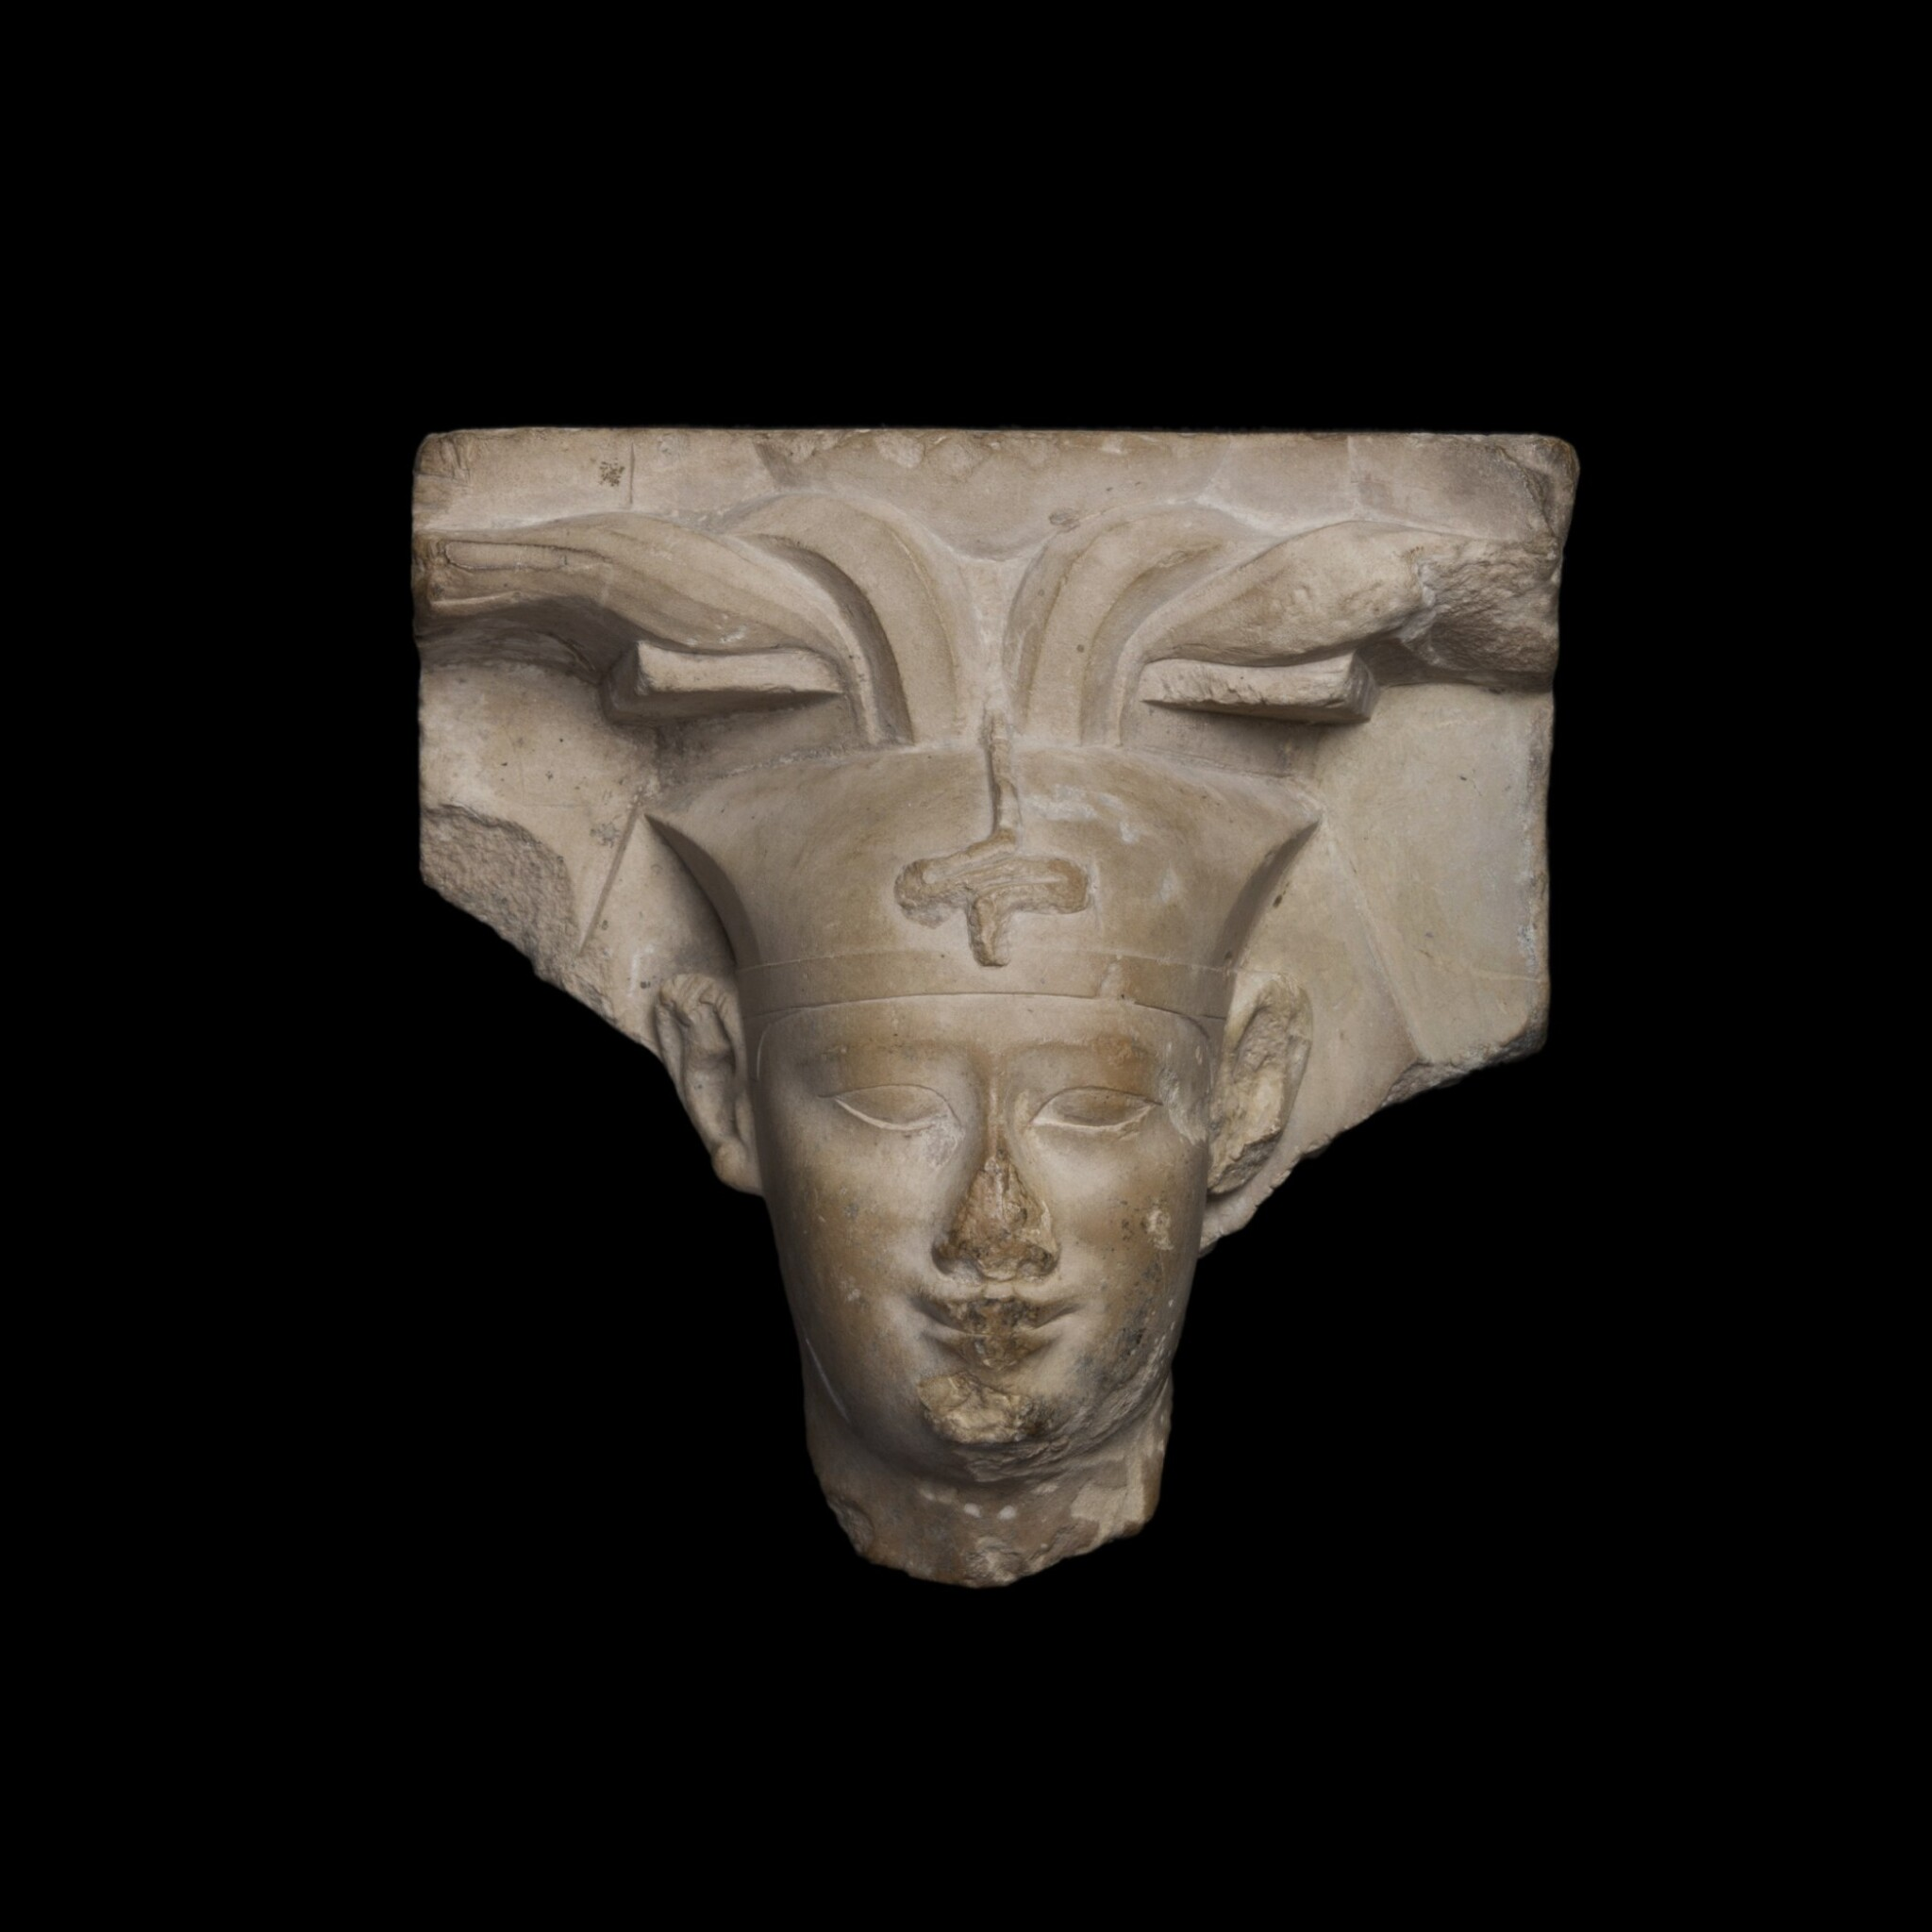 View 1 of Lot 36. An Egyptian Limestone Head of a King, early Ptolemaic Period, circa 304-350 B.C..